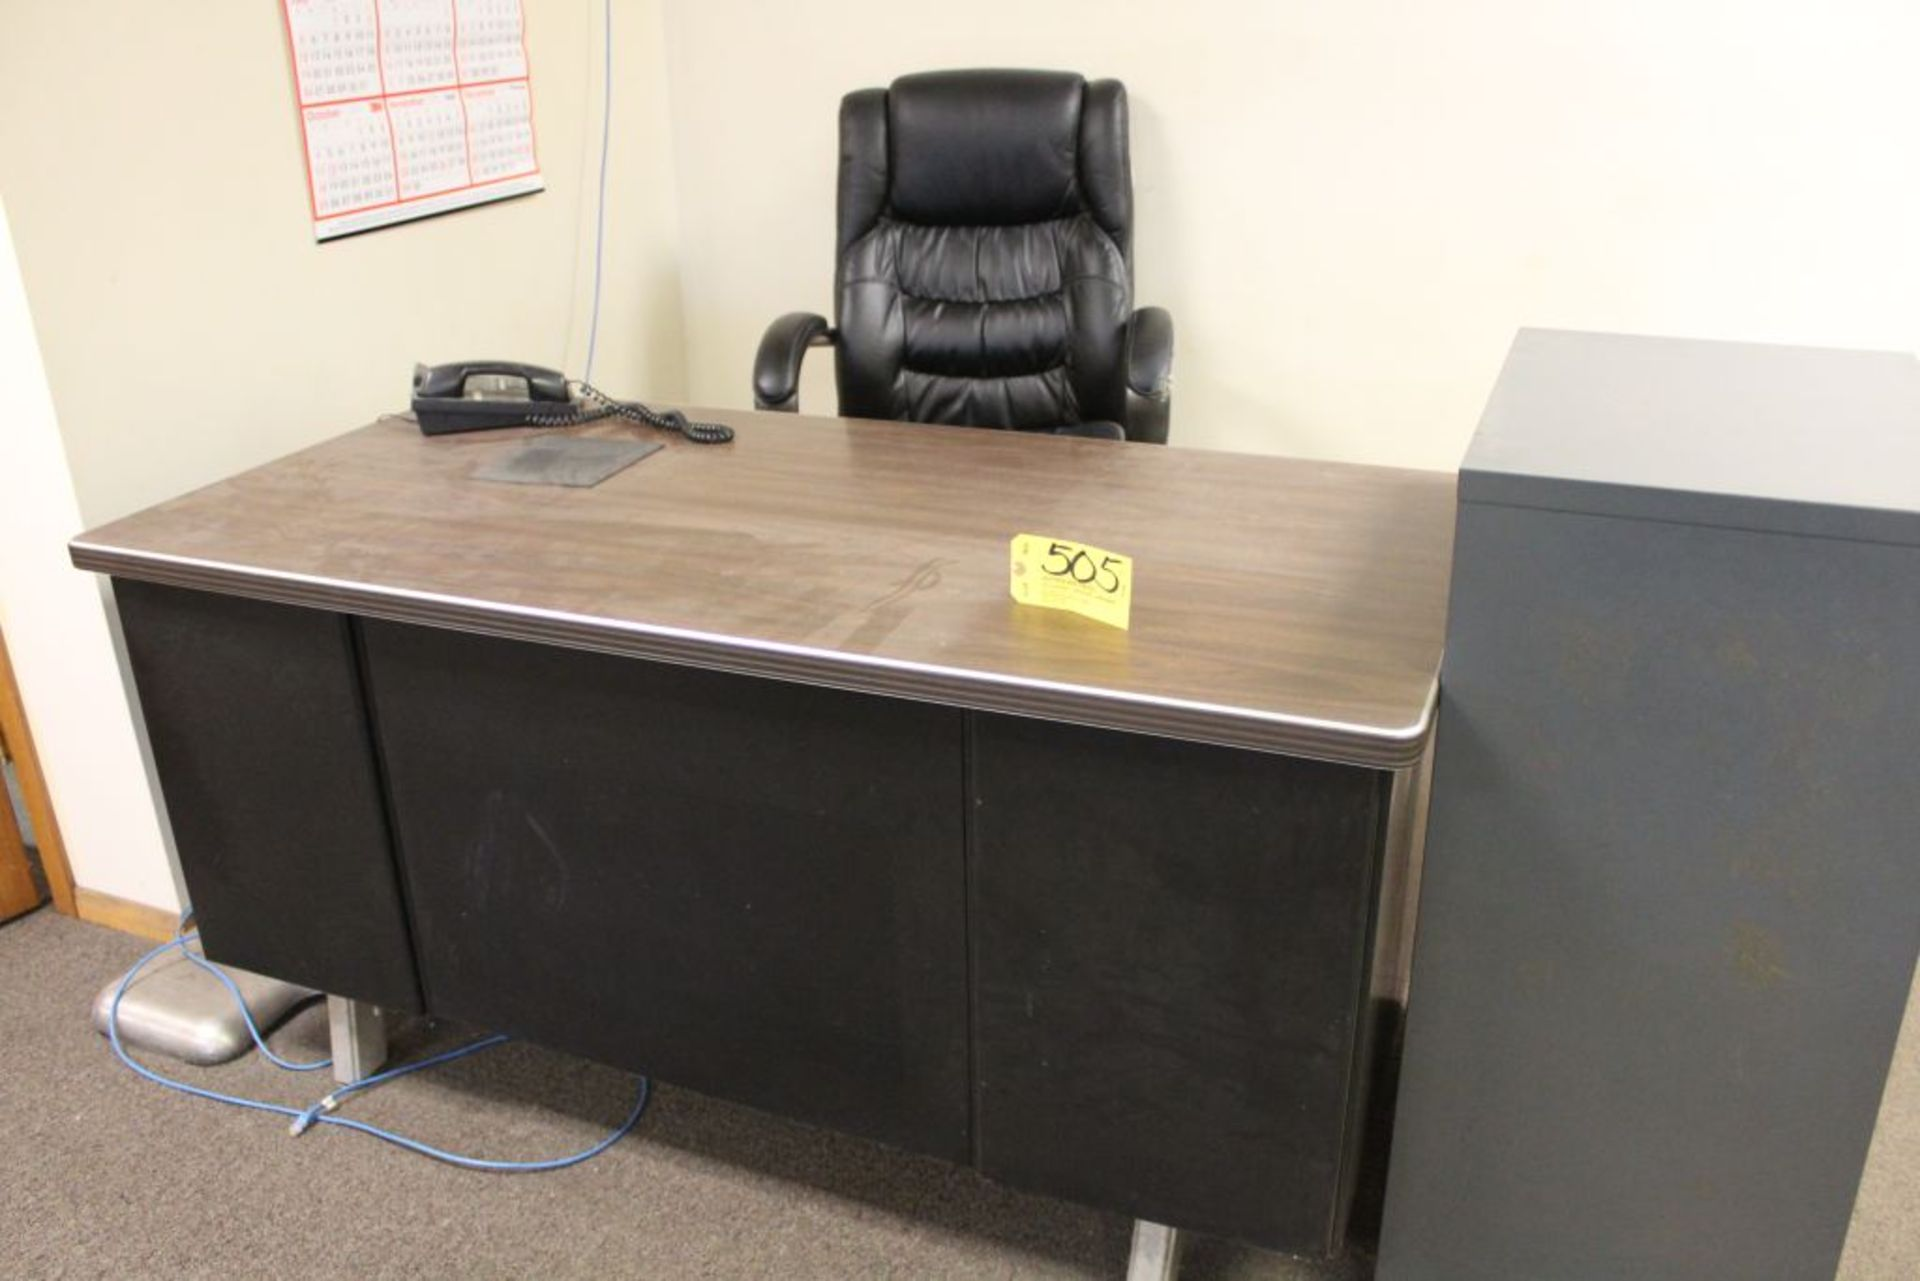 Lot 505 - Steel desk with chair.